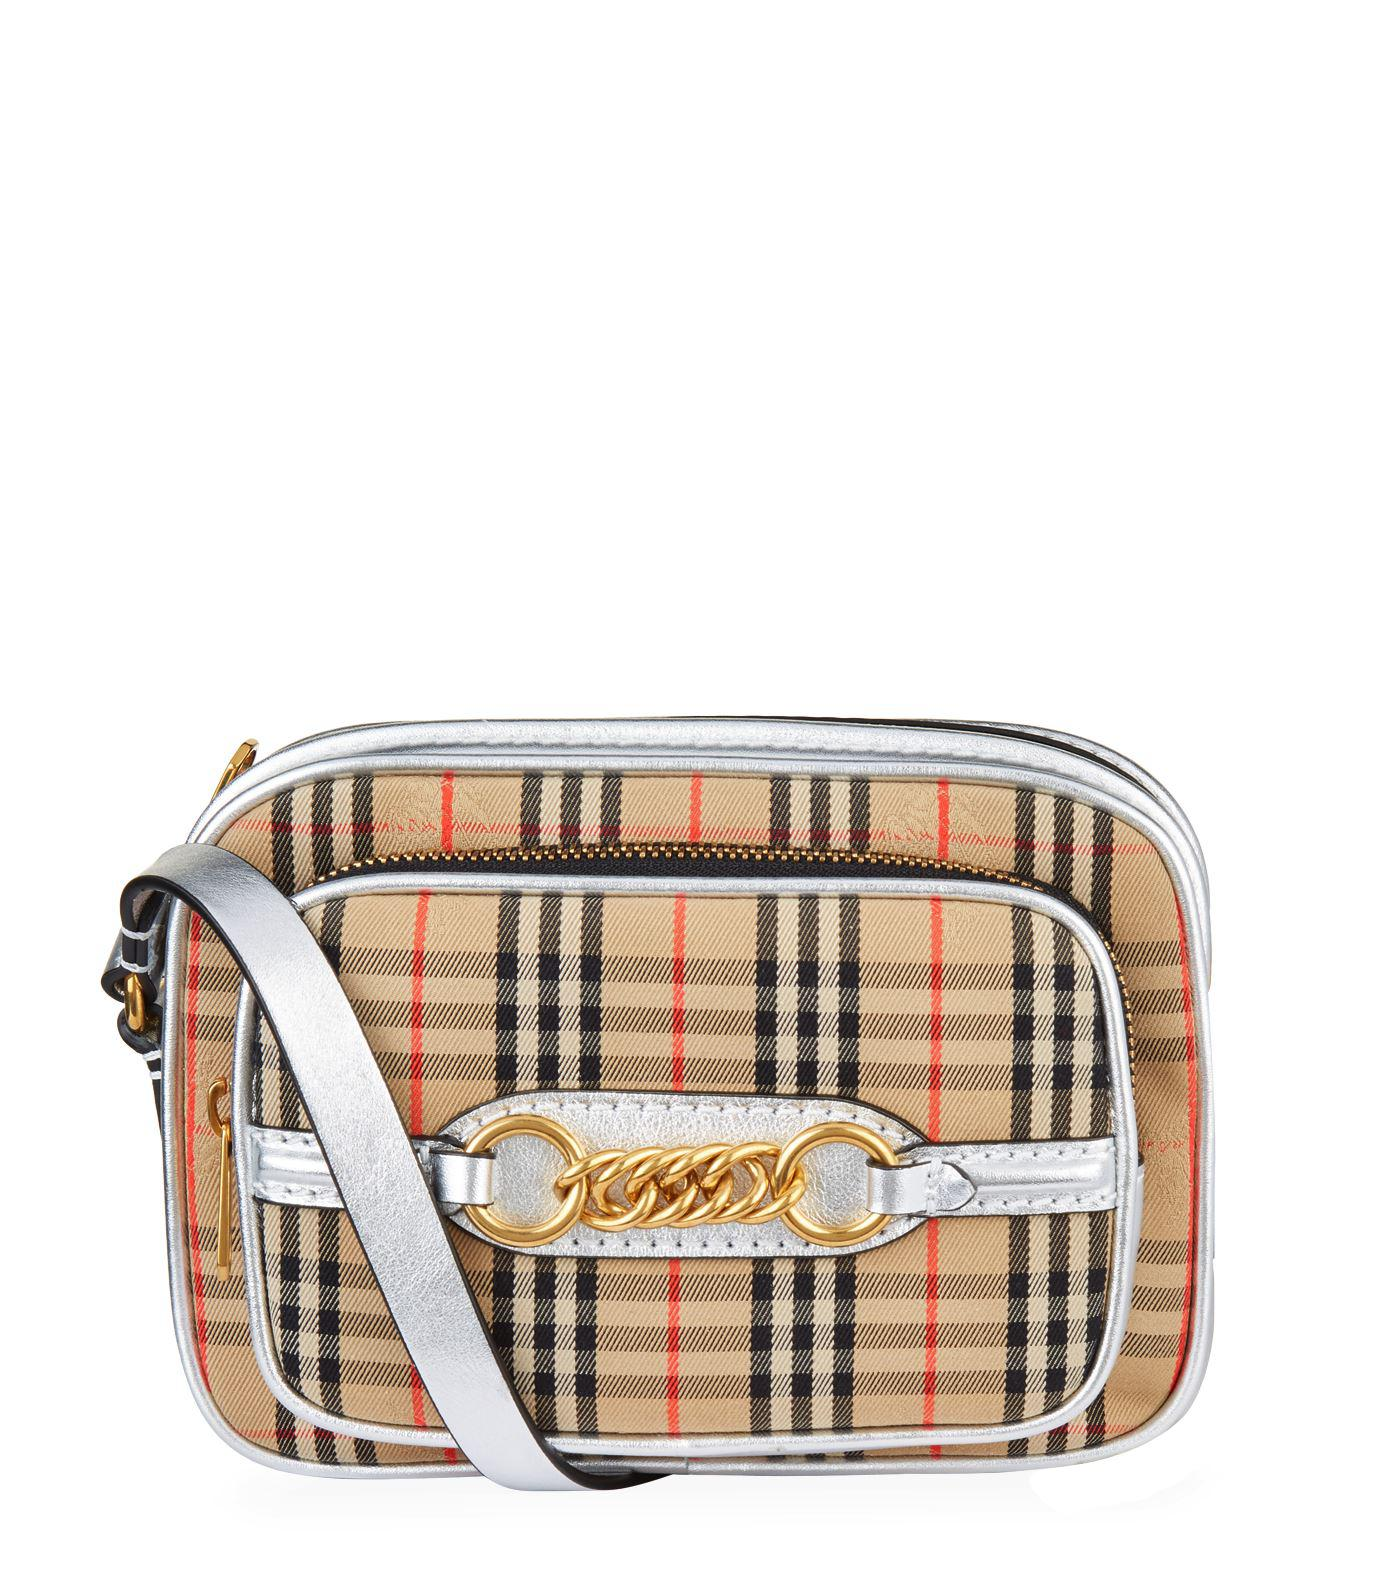 8e39761fae4f Lyst - Burberry 1983 Check Link Camera Bag in Gray